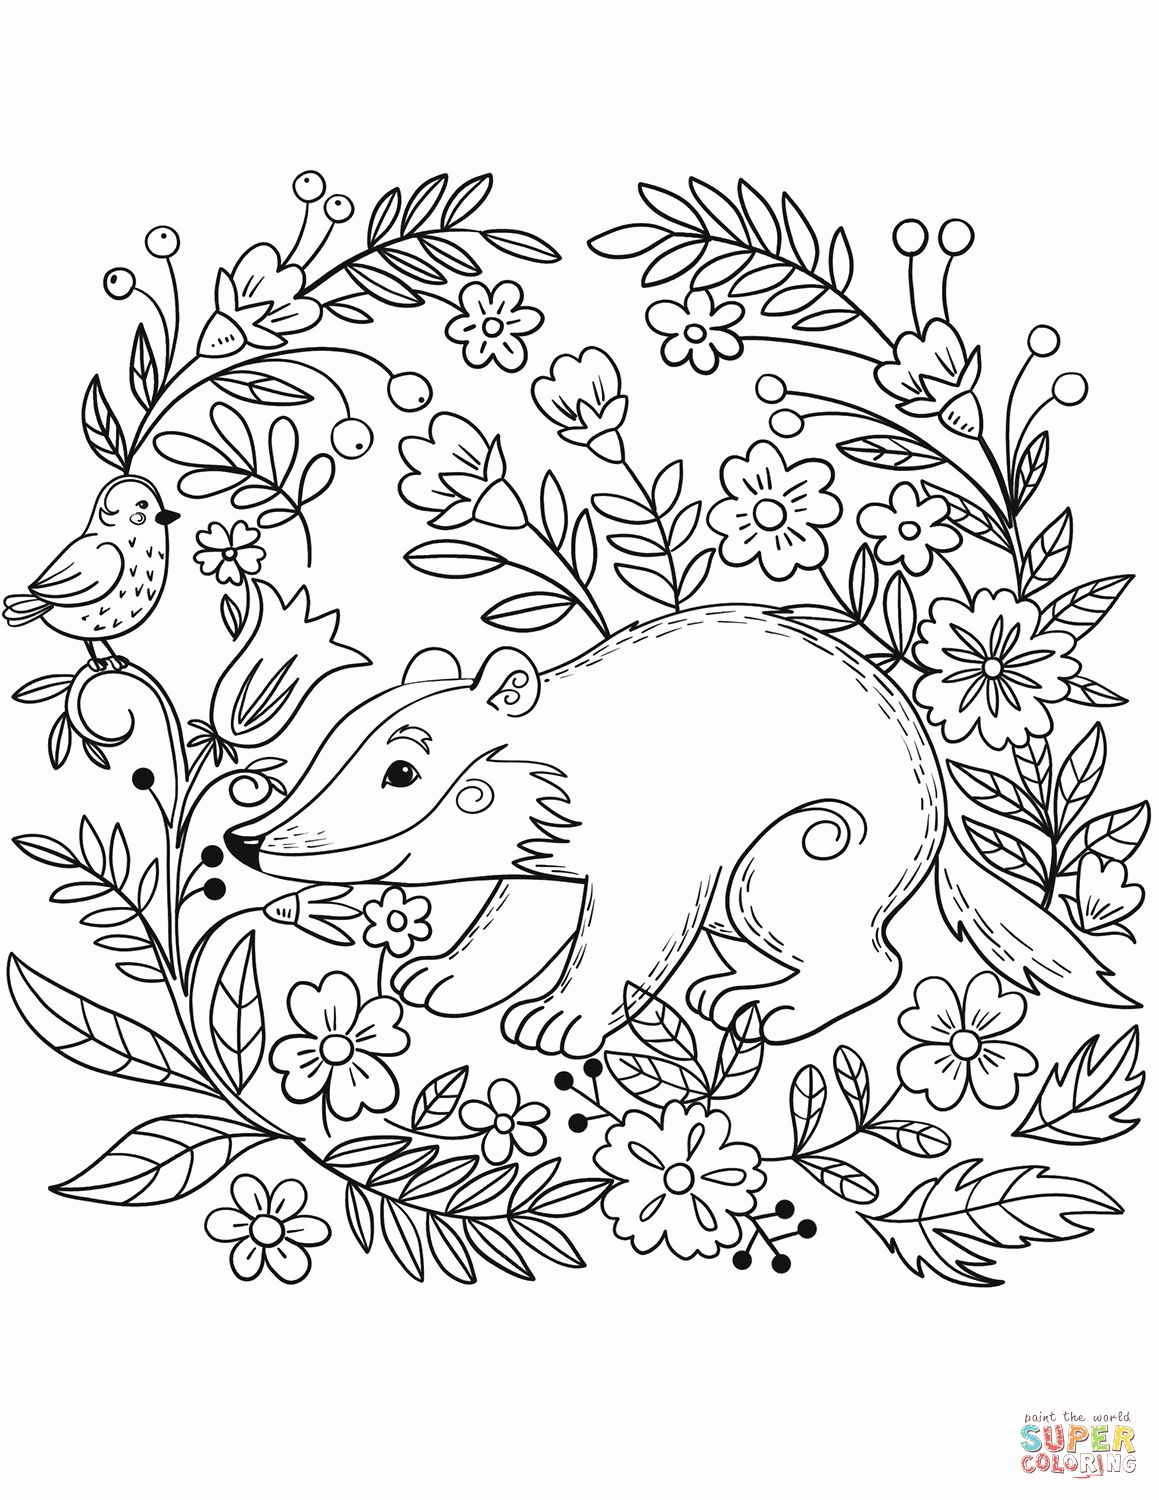 nocturnal animals coloring pages pictures of nocturnal animals coloring home nocturnal animals pages coloring